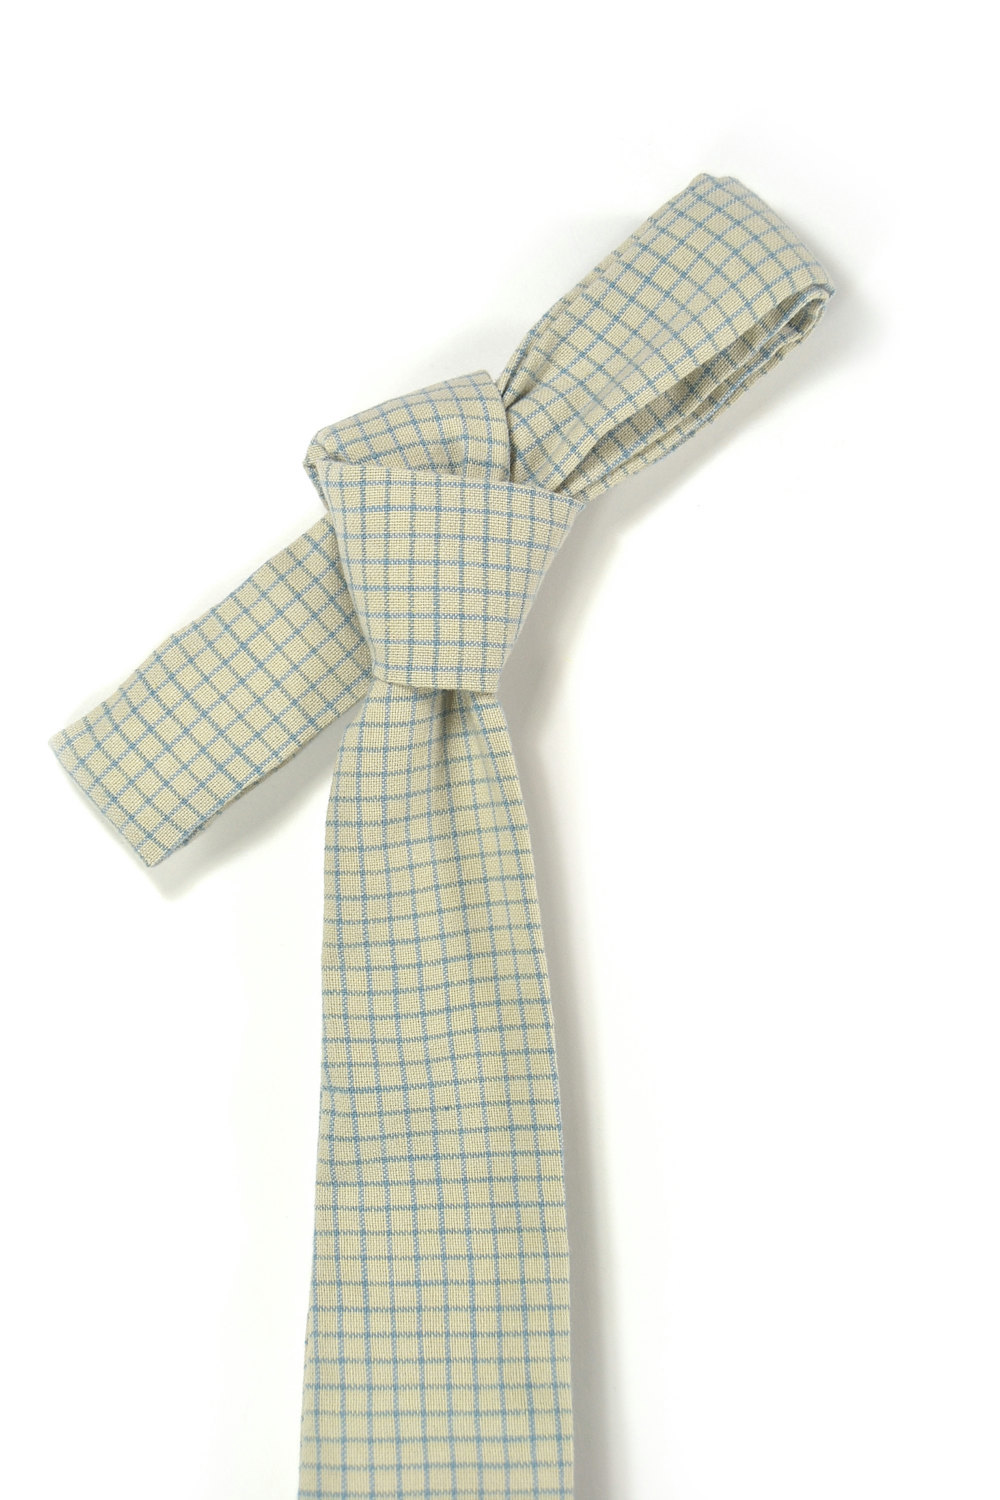 Cream blue check necktie - Wedding Mens Tie Skinny Necktie - Laid-Back necktie image 4